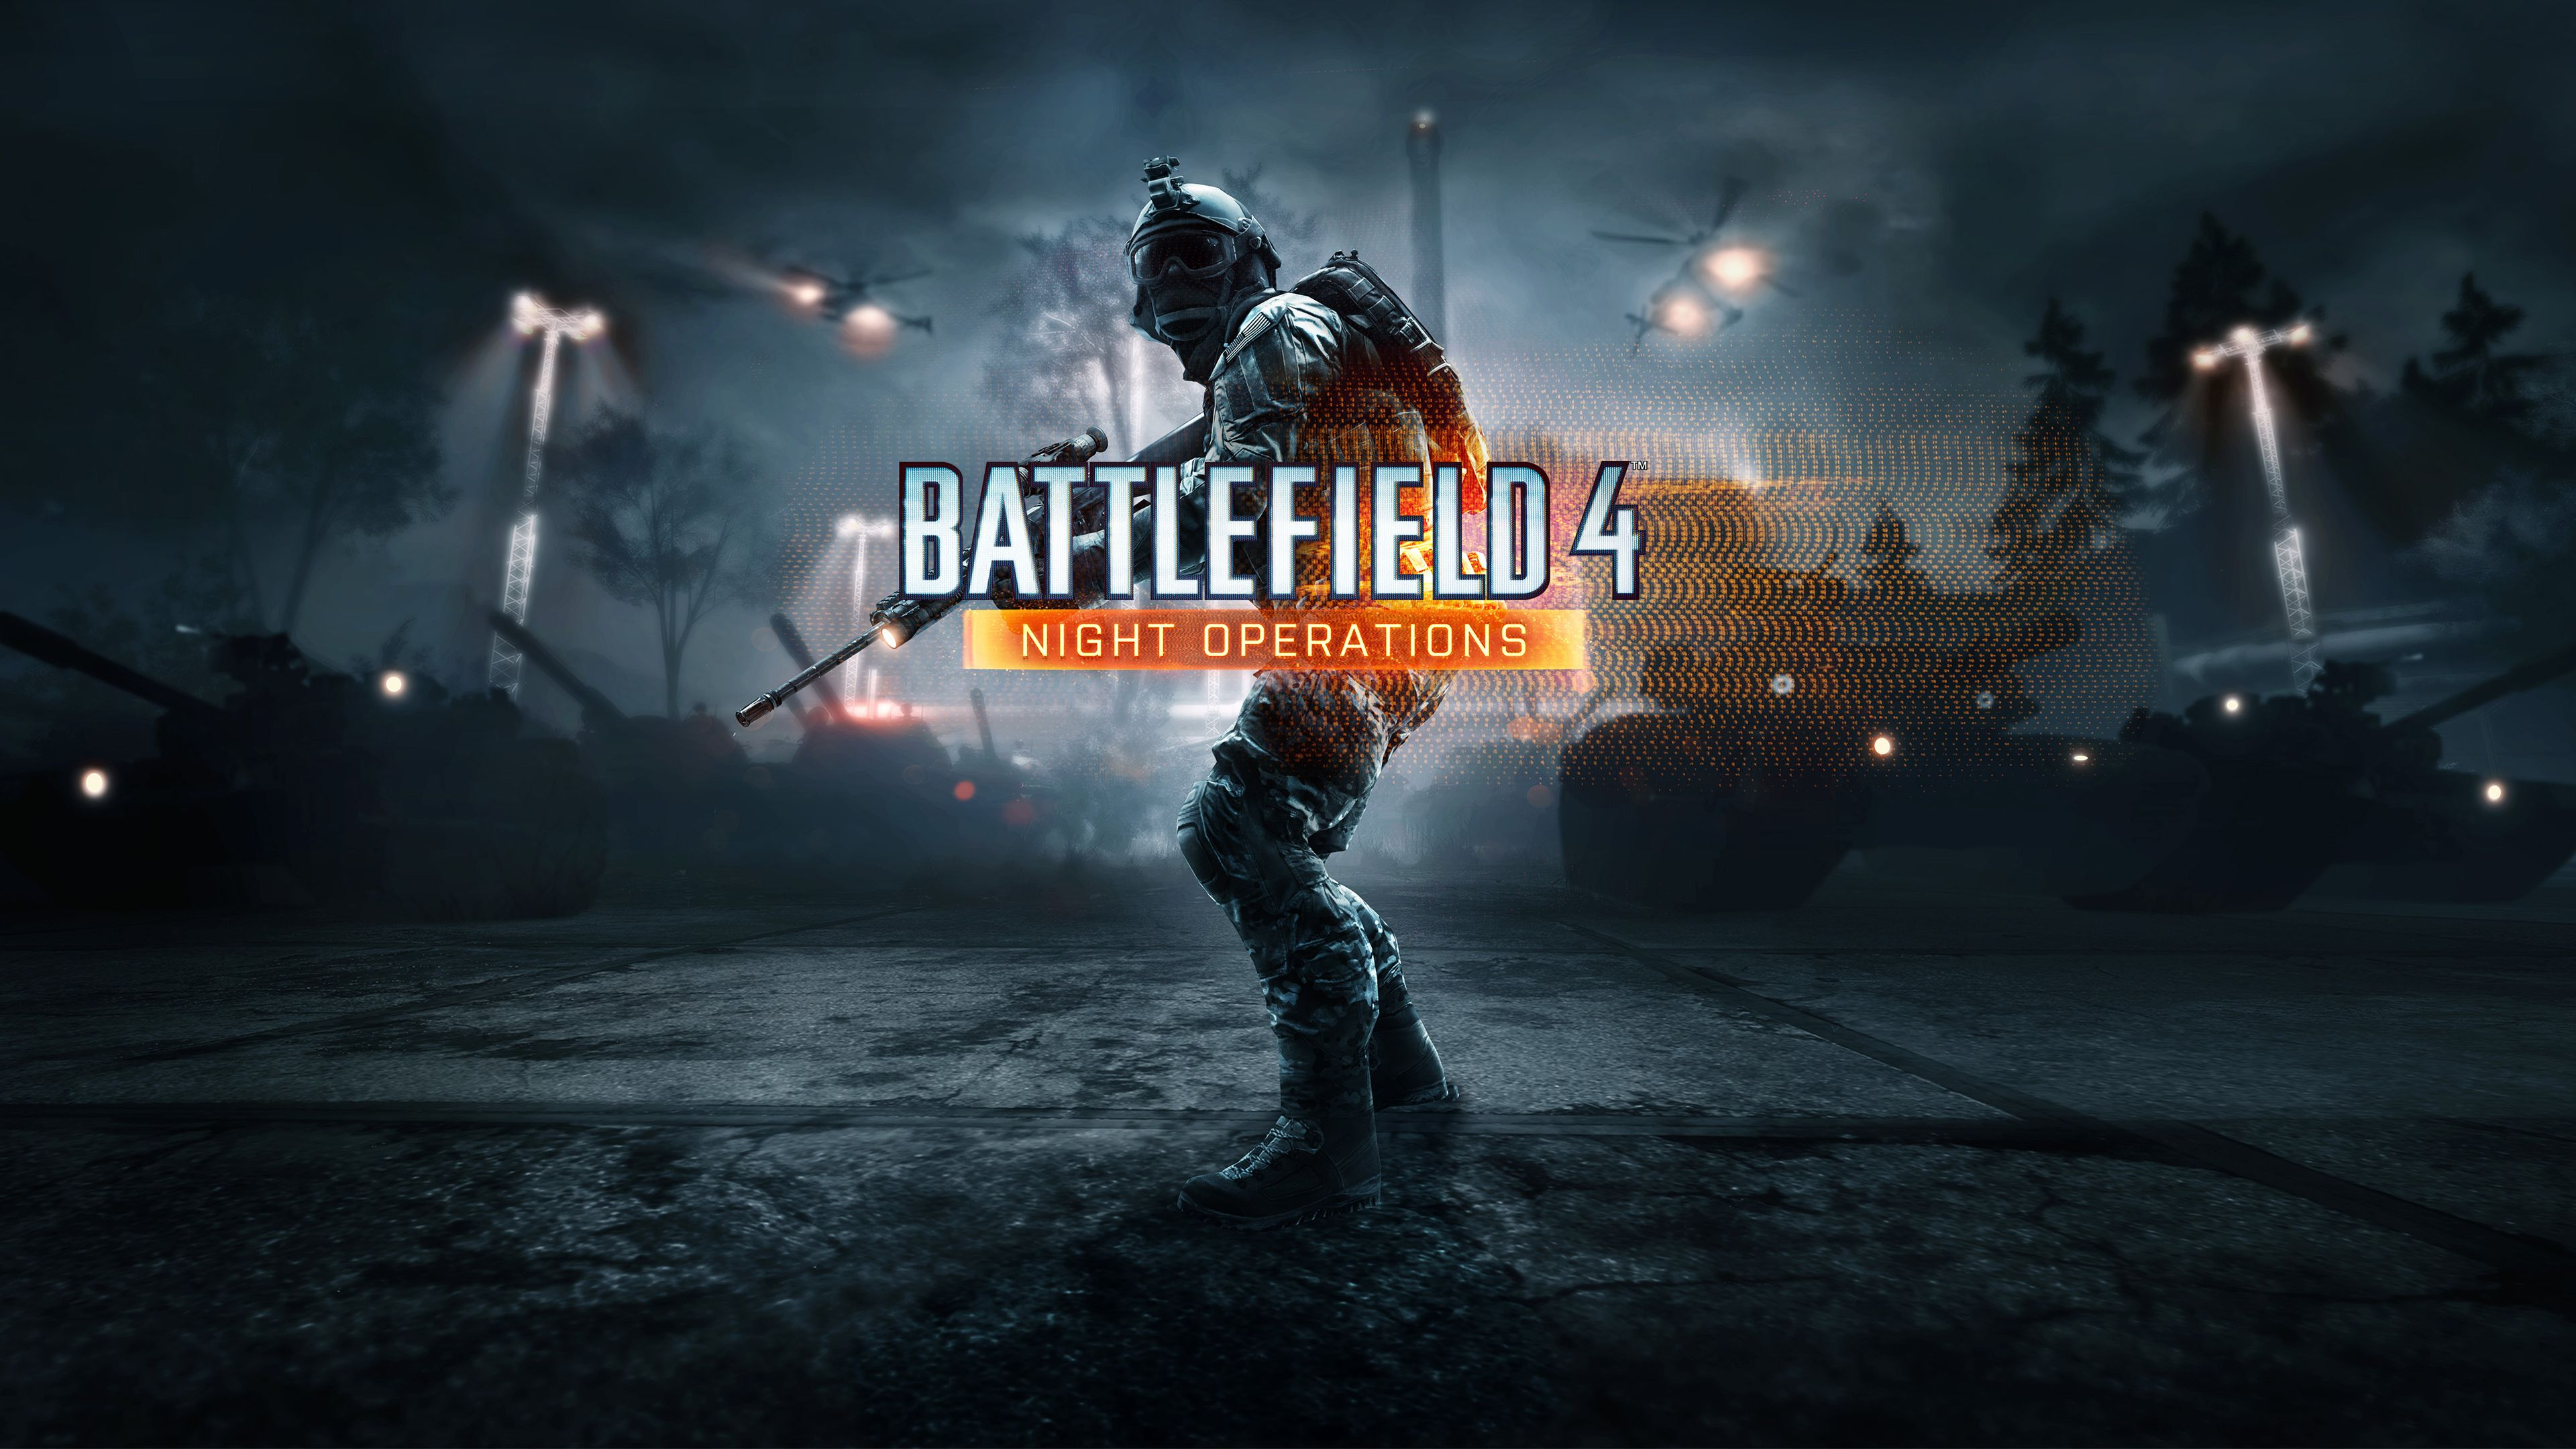 3840x2160 Battlefield 4 Game, HD Games, 4k Wallpapers, Images, Backgrounds ...